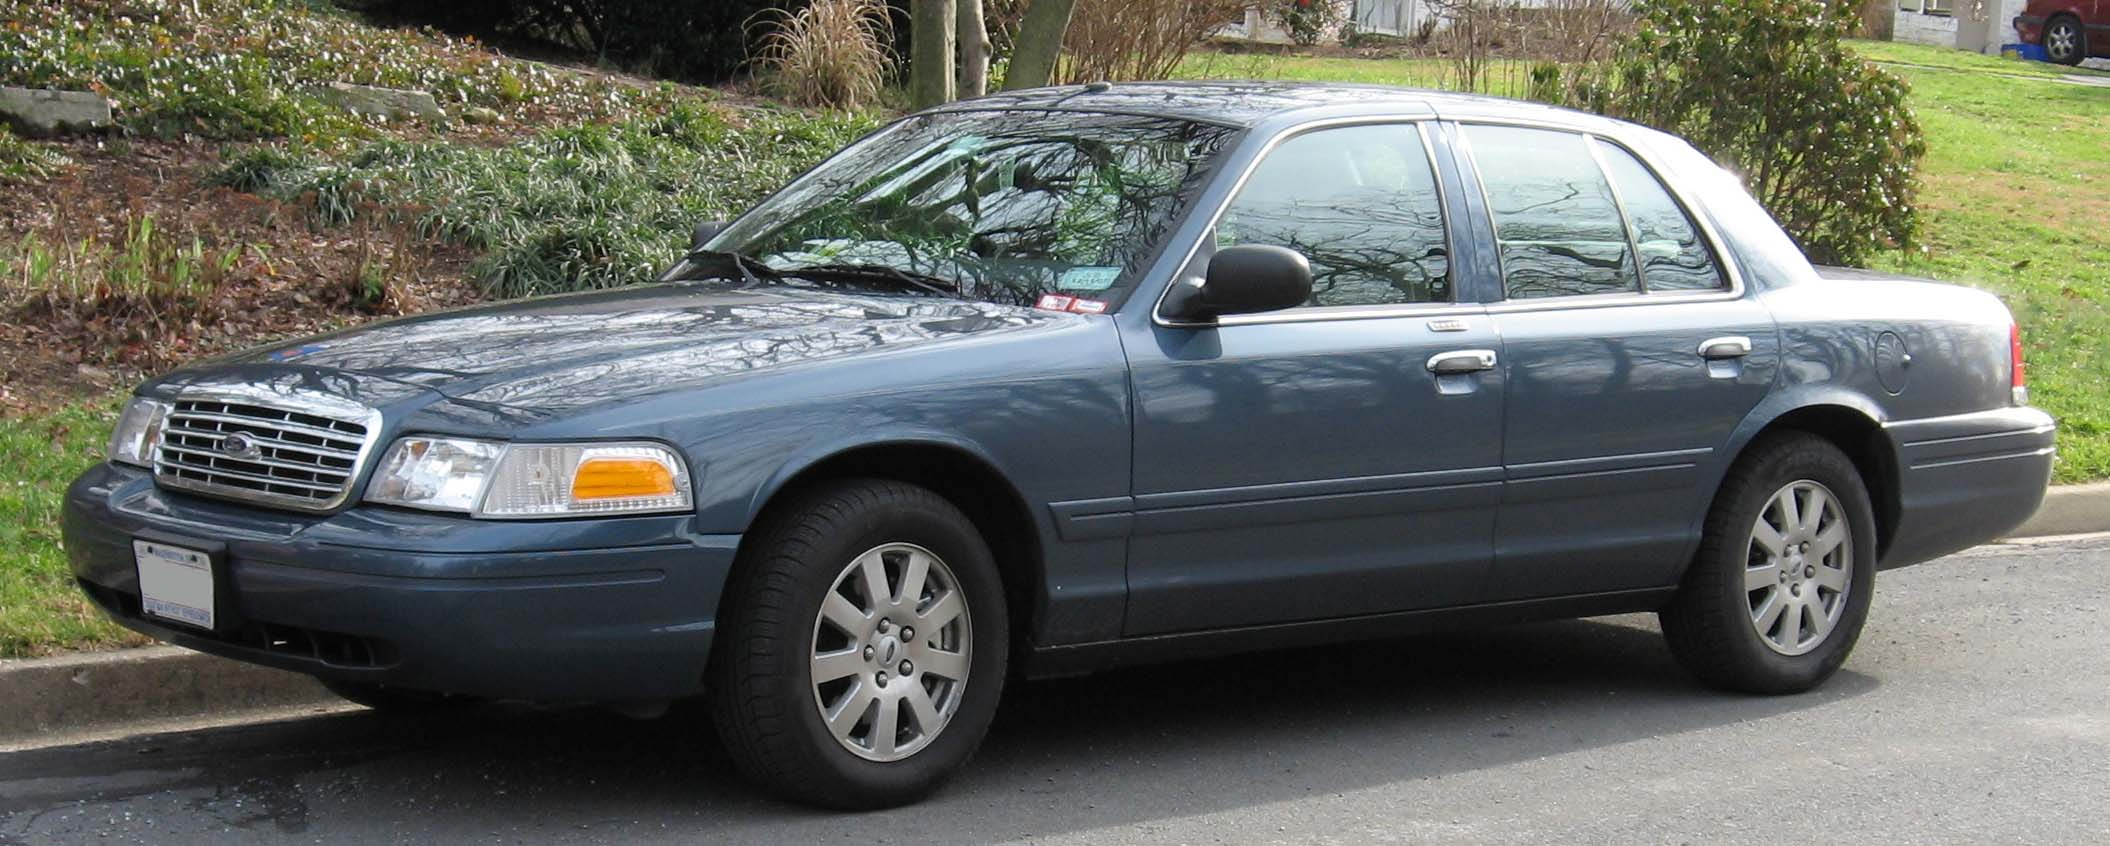 Ford Crown Victoria 2007 #9